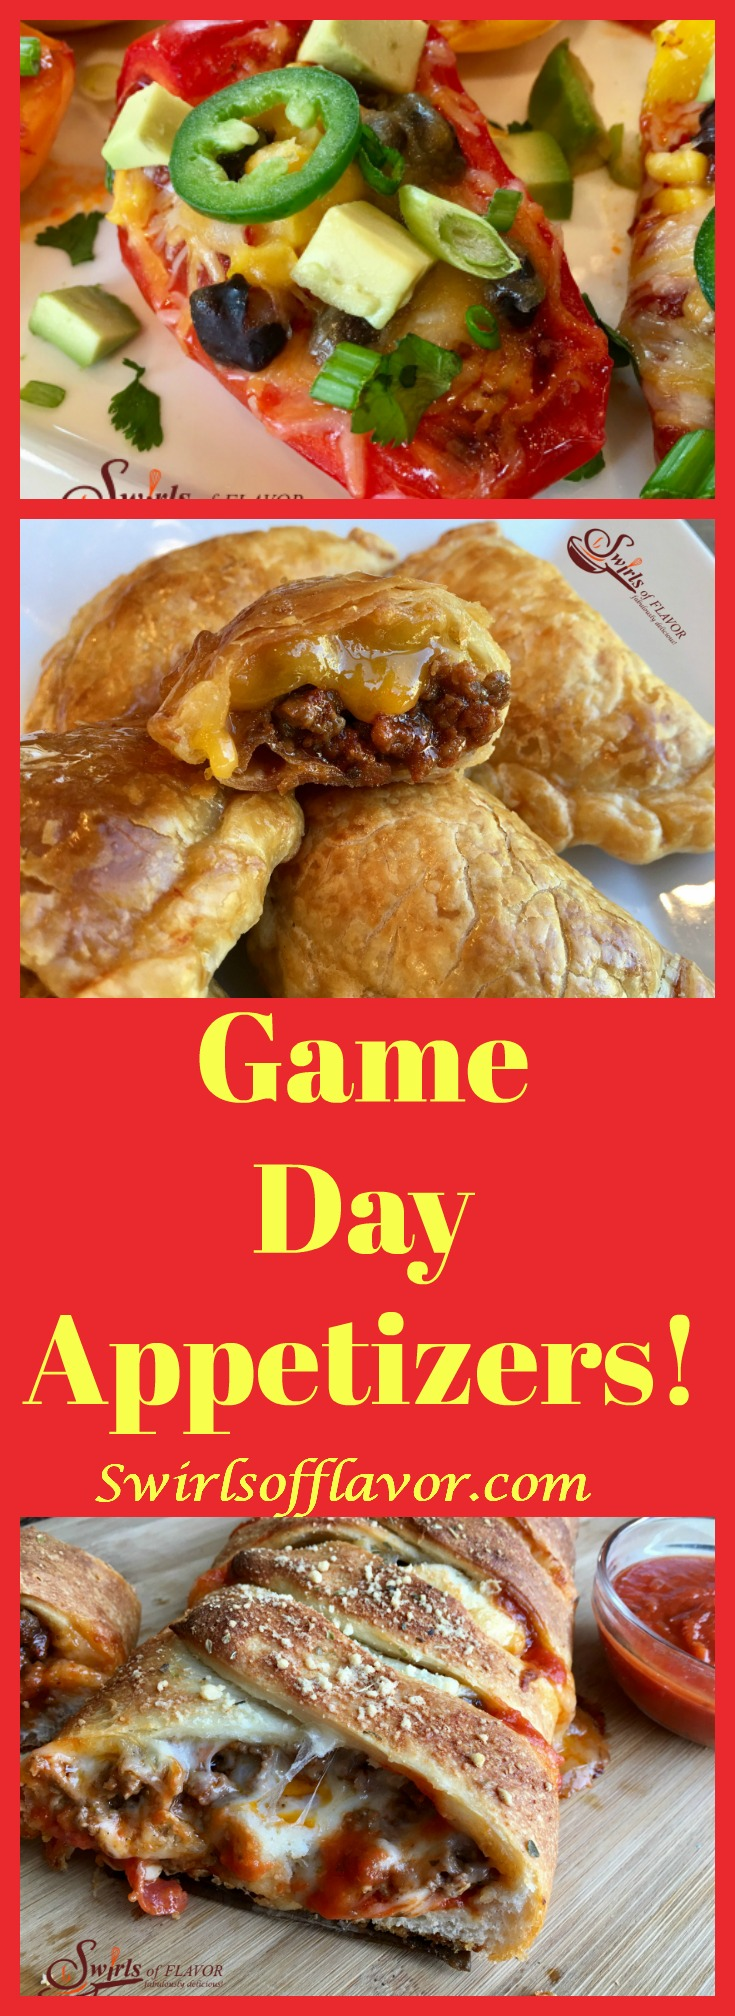 The playoffs are here and the Super Bowl is right around the corner. Time for some lip-smackin' game-watching snacks like Jalapeno Poppers, Pizza Bread, Nachos, Guacamole and Zucchini Fries! Super Bowl | pizza | pizza bread | guacamole | cheeseburger | empanadas | baked fries | zucchini fries | appetizers | snacks | recipe | #swirlsofflavor